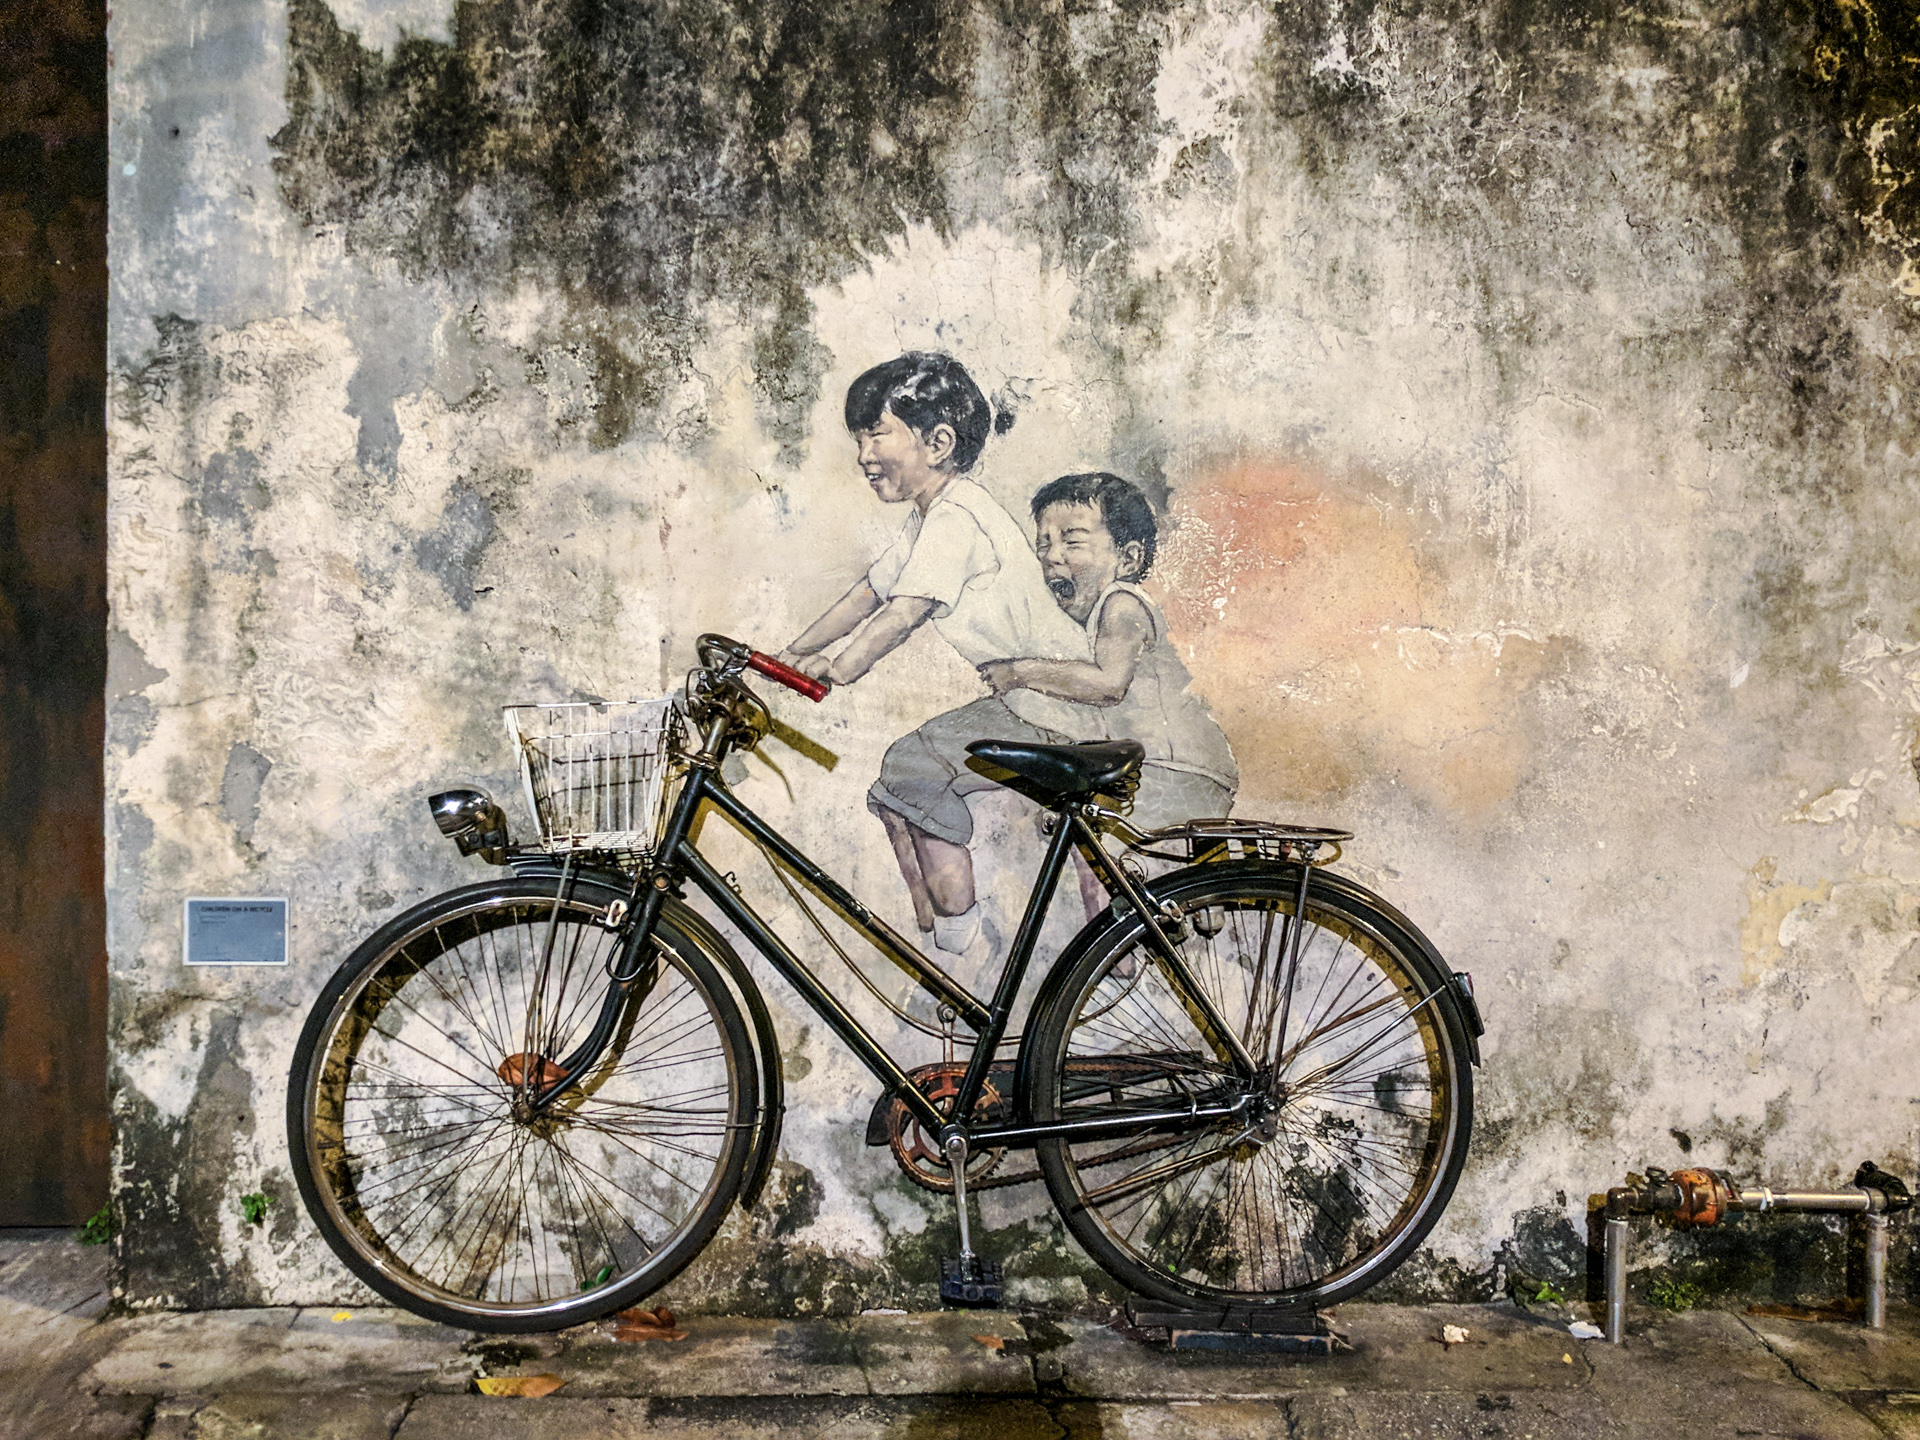 Little Children on a Bicycle, street art in George Town, Penang, Malaysia